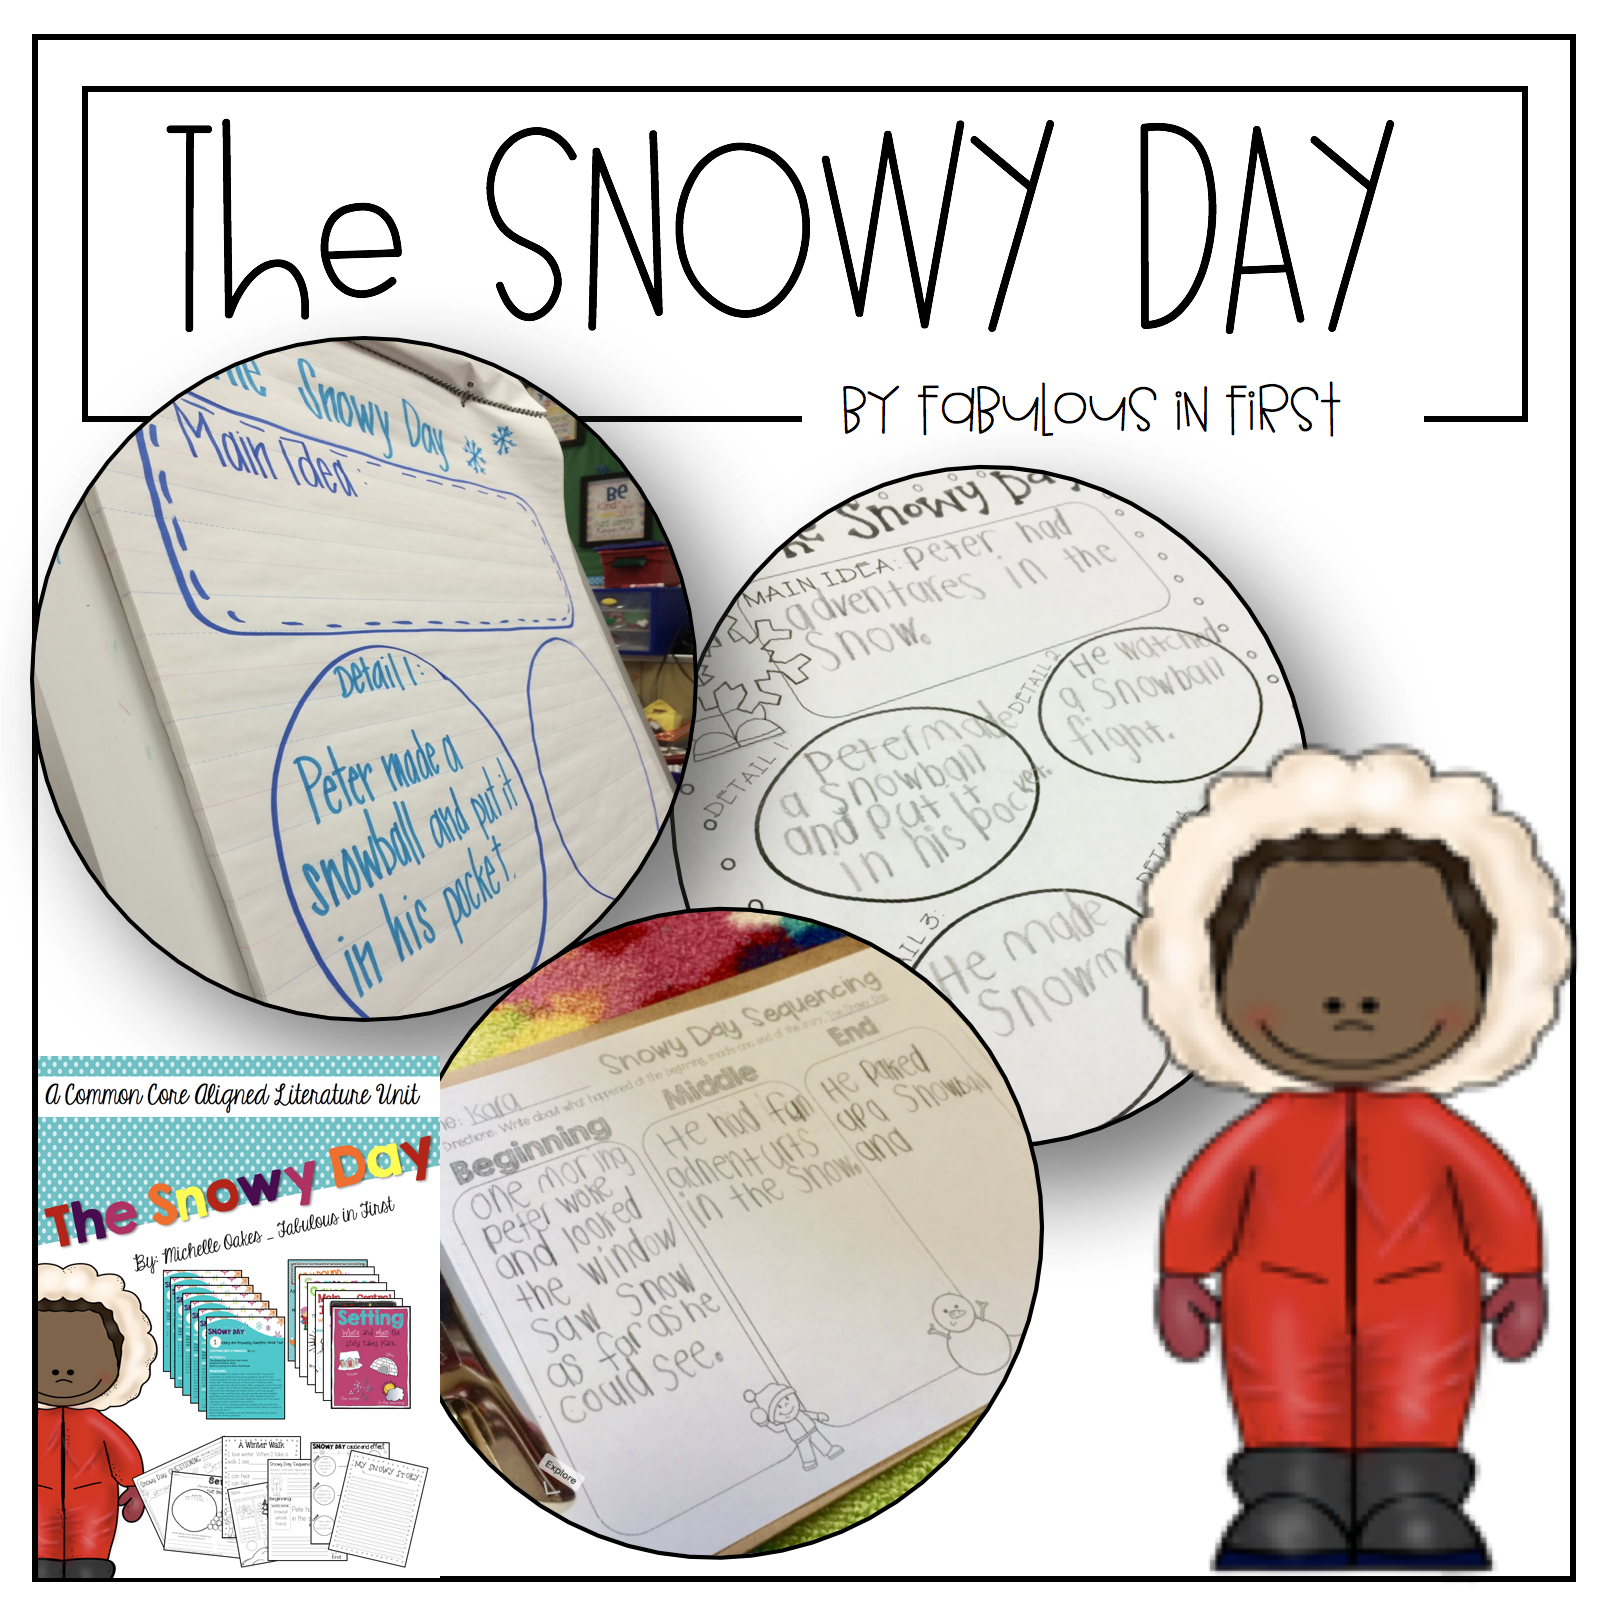 The Snowy Day A Literature Unit